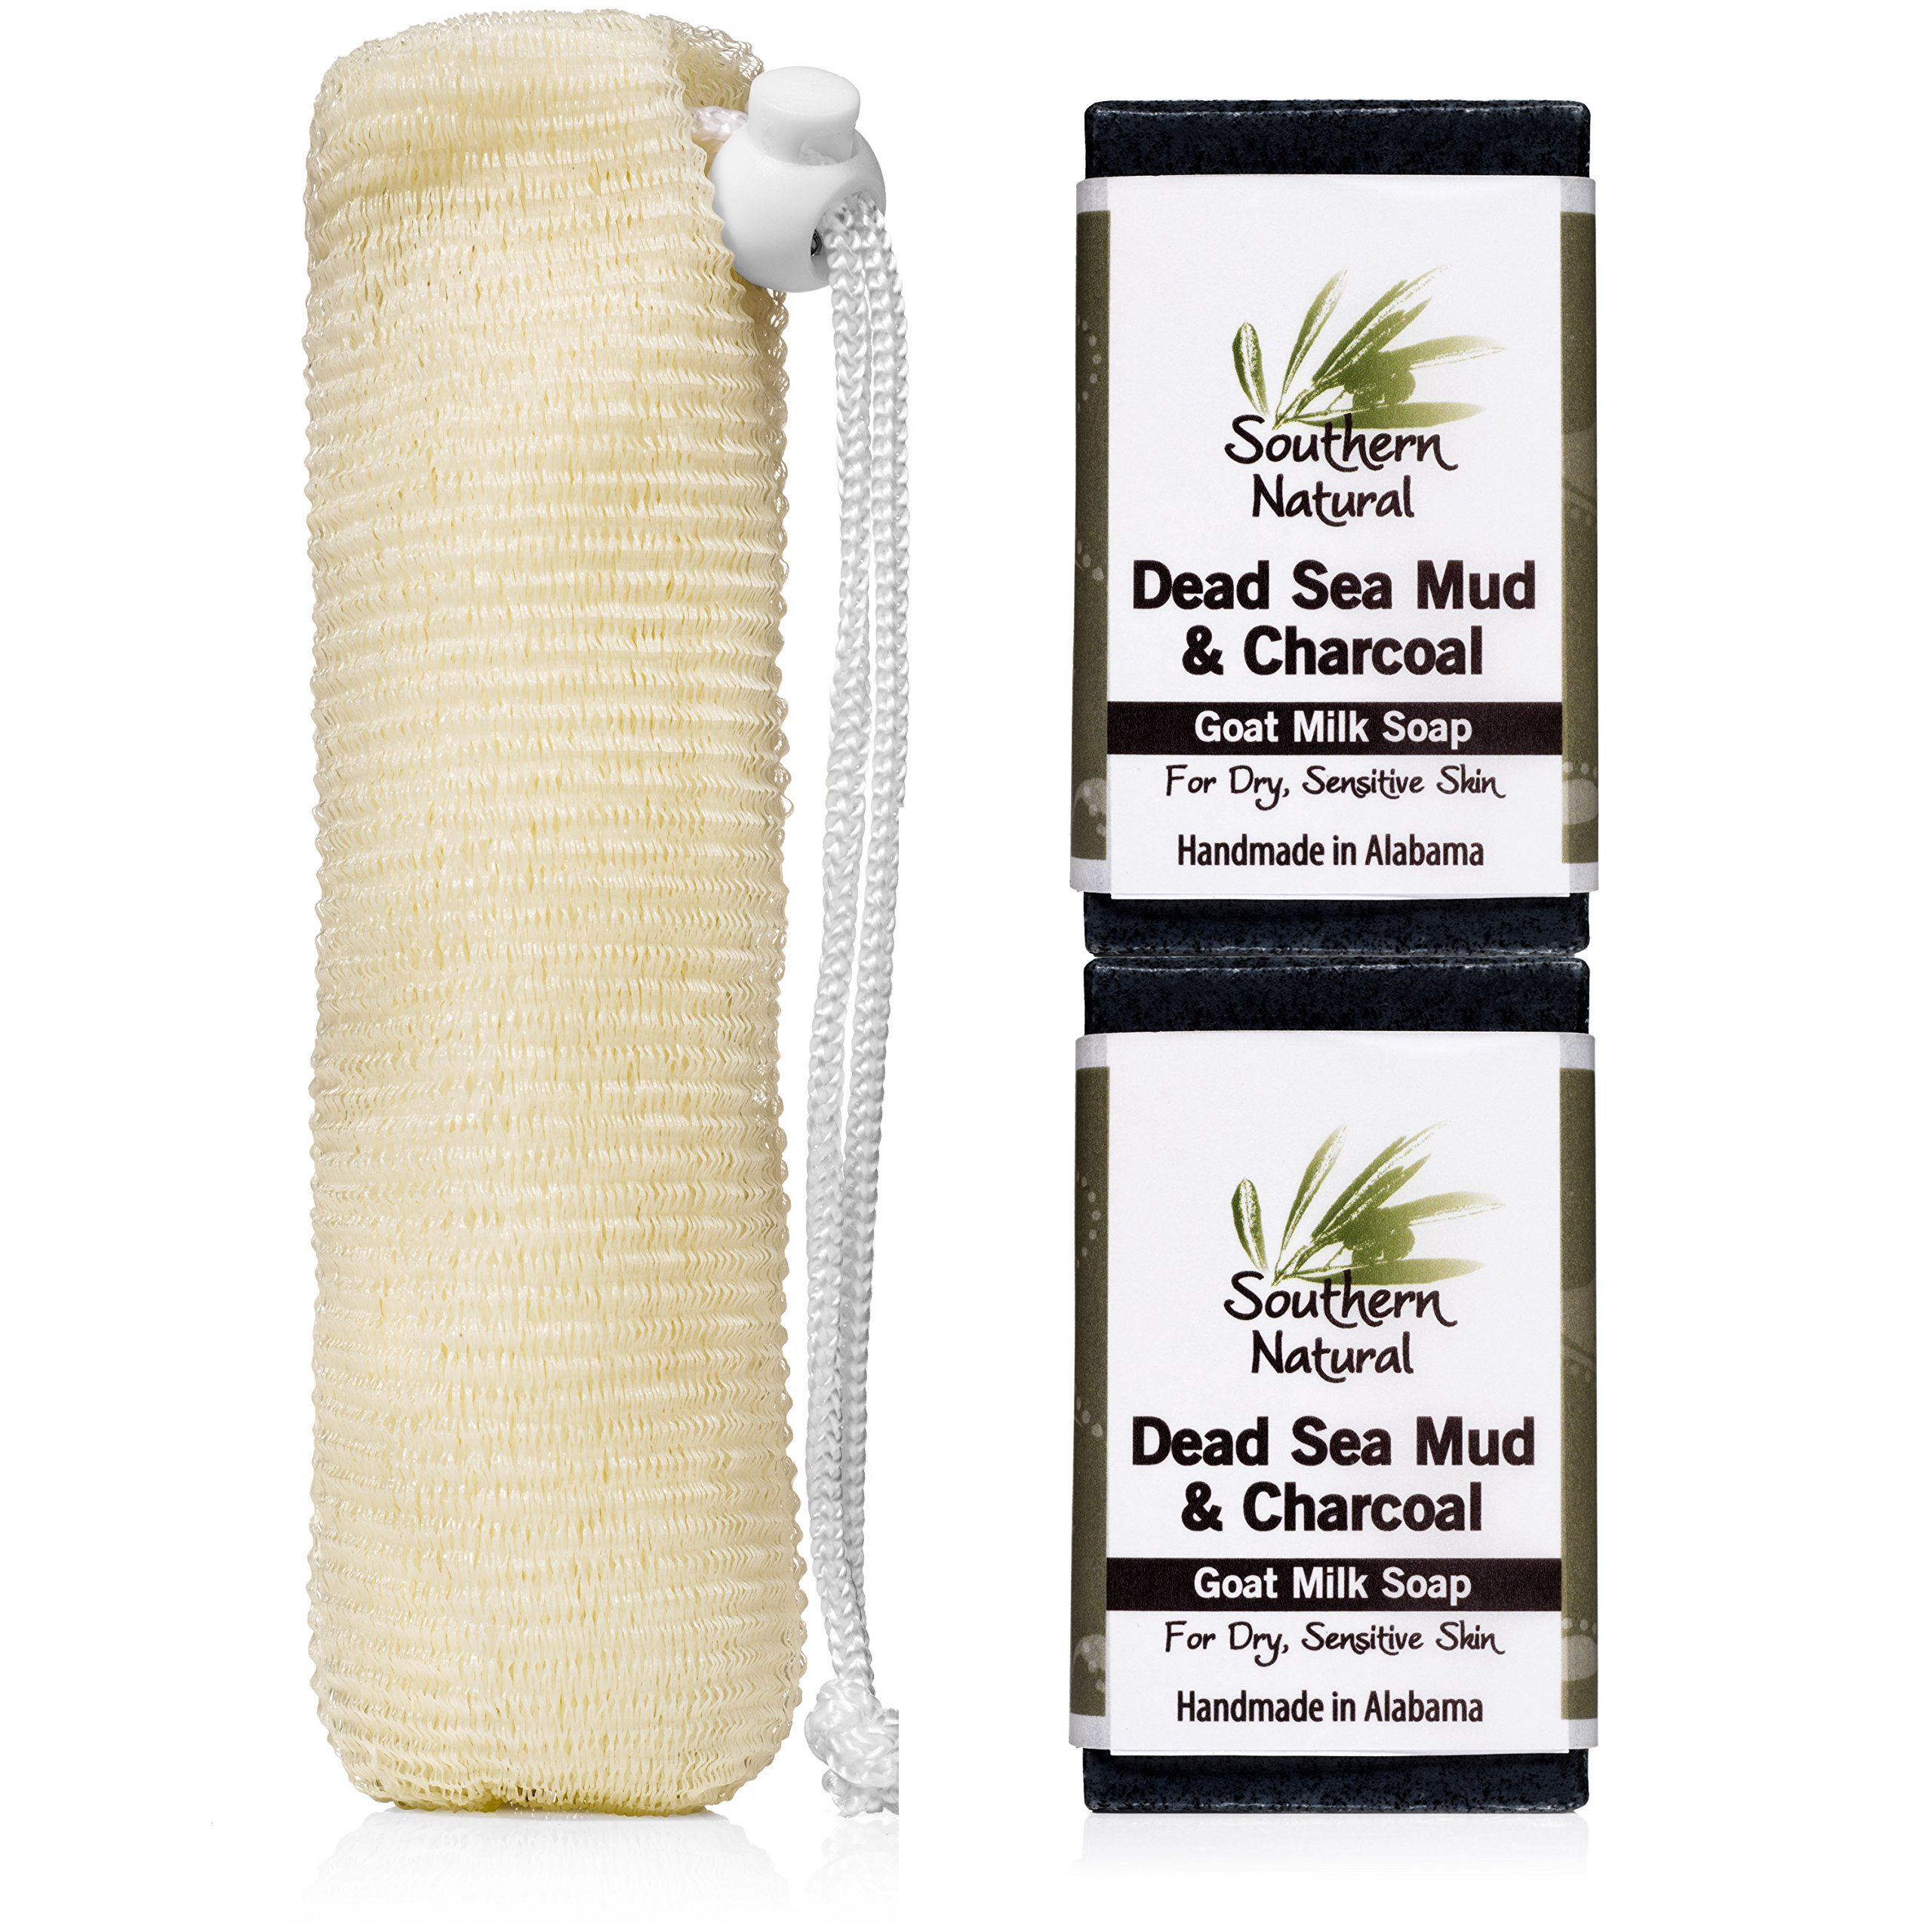 Bamboo Charcoal Soap Bars With Dead Sea Mud - For Acne, Psoriasis & Eczema. All Natural Face Cleanser and Body Soap, For Both Oily and Dry Skin. 2 Bar Pack (Apprx. 4 oz bars) With Bonus Soap Sock.